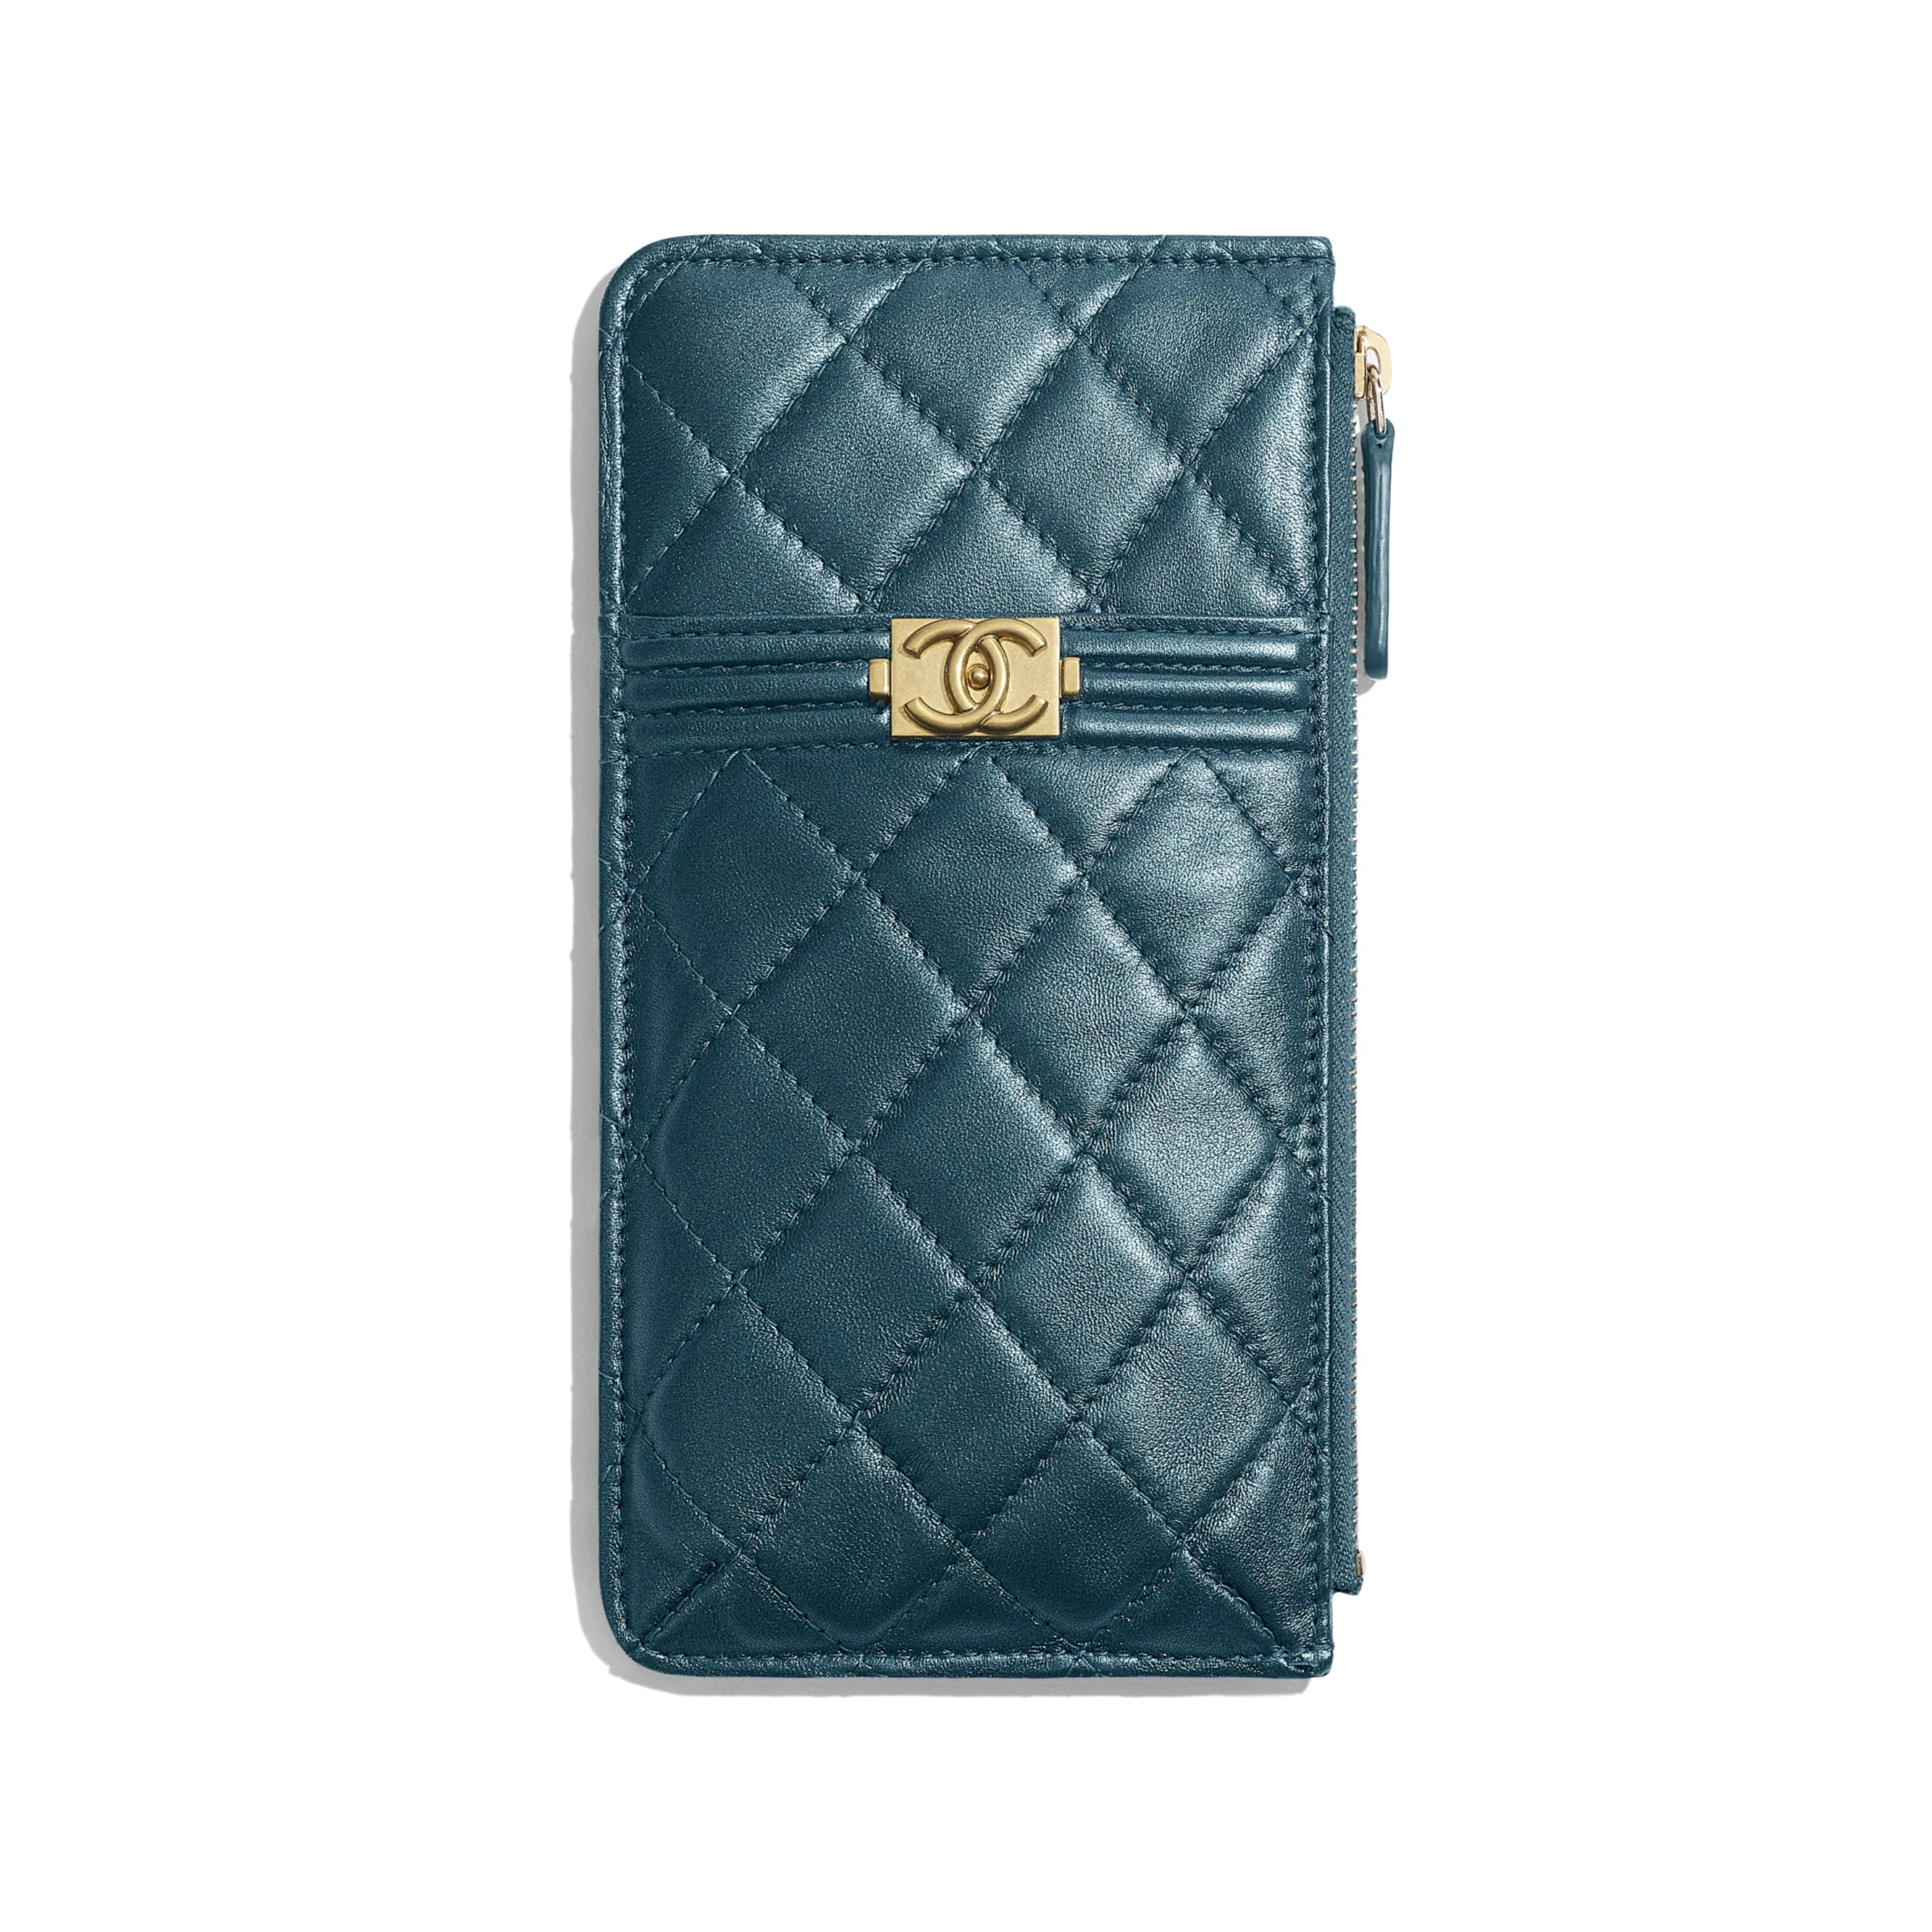 BOY CHANEL Phone & Card Holder - Blue - Metallic Lambskin & Gold Metal - CHANEL - Default view - see standard sized version